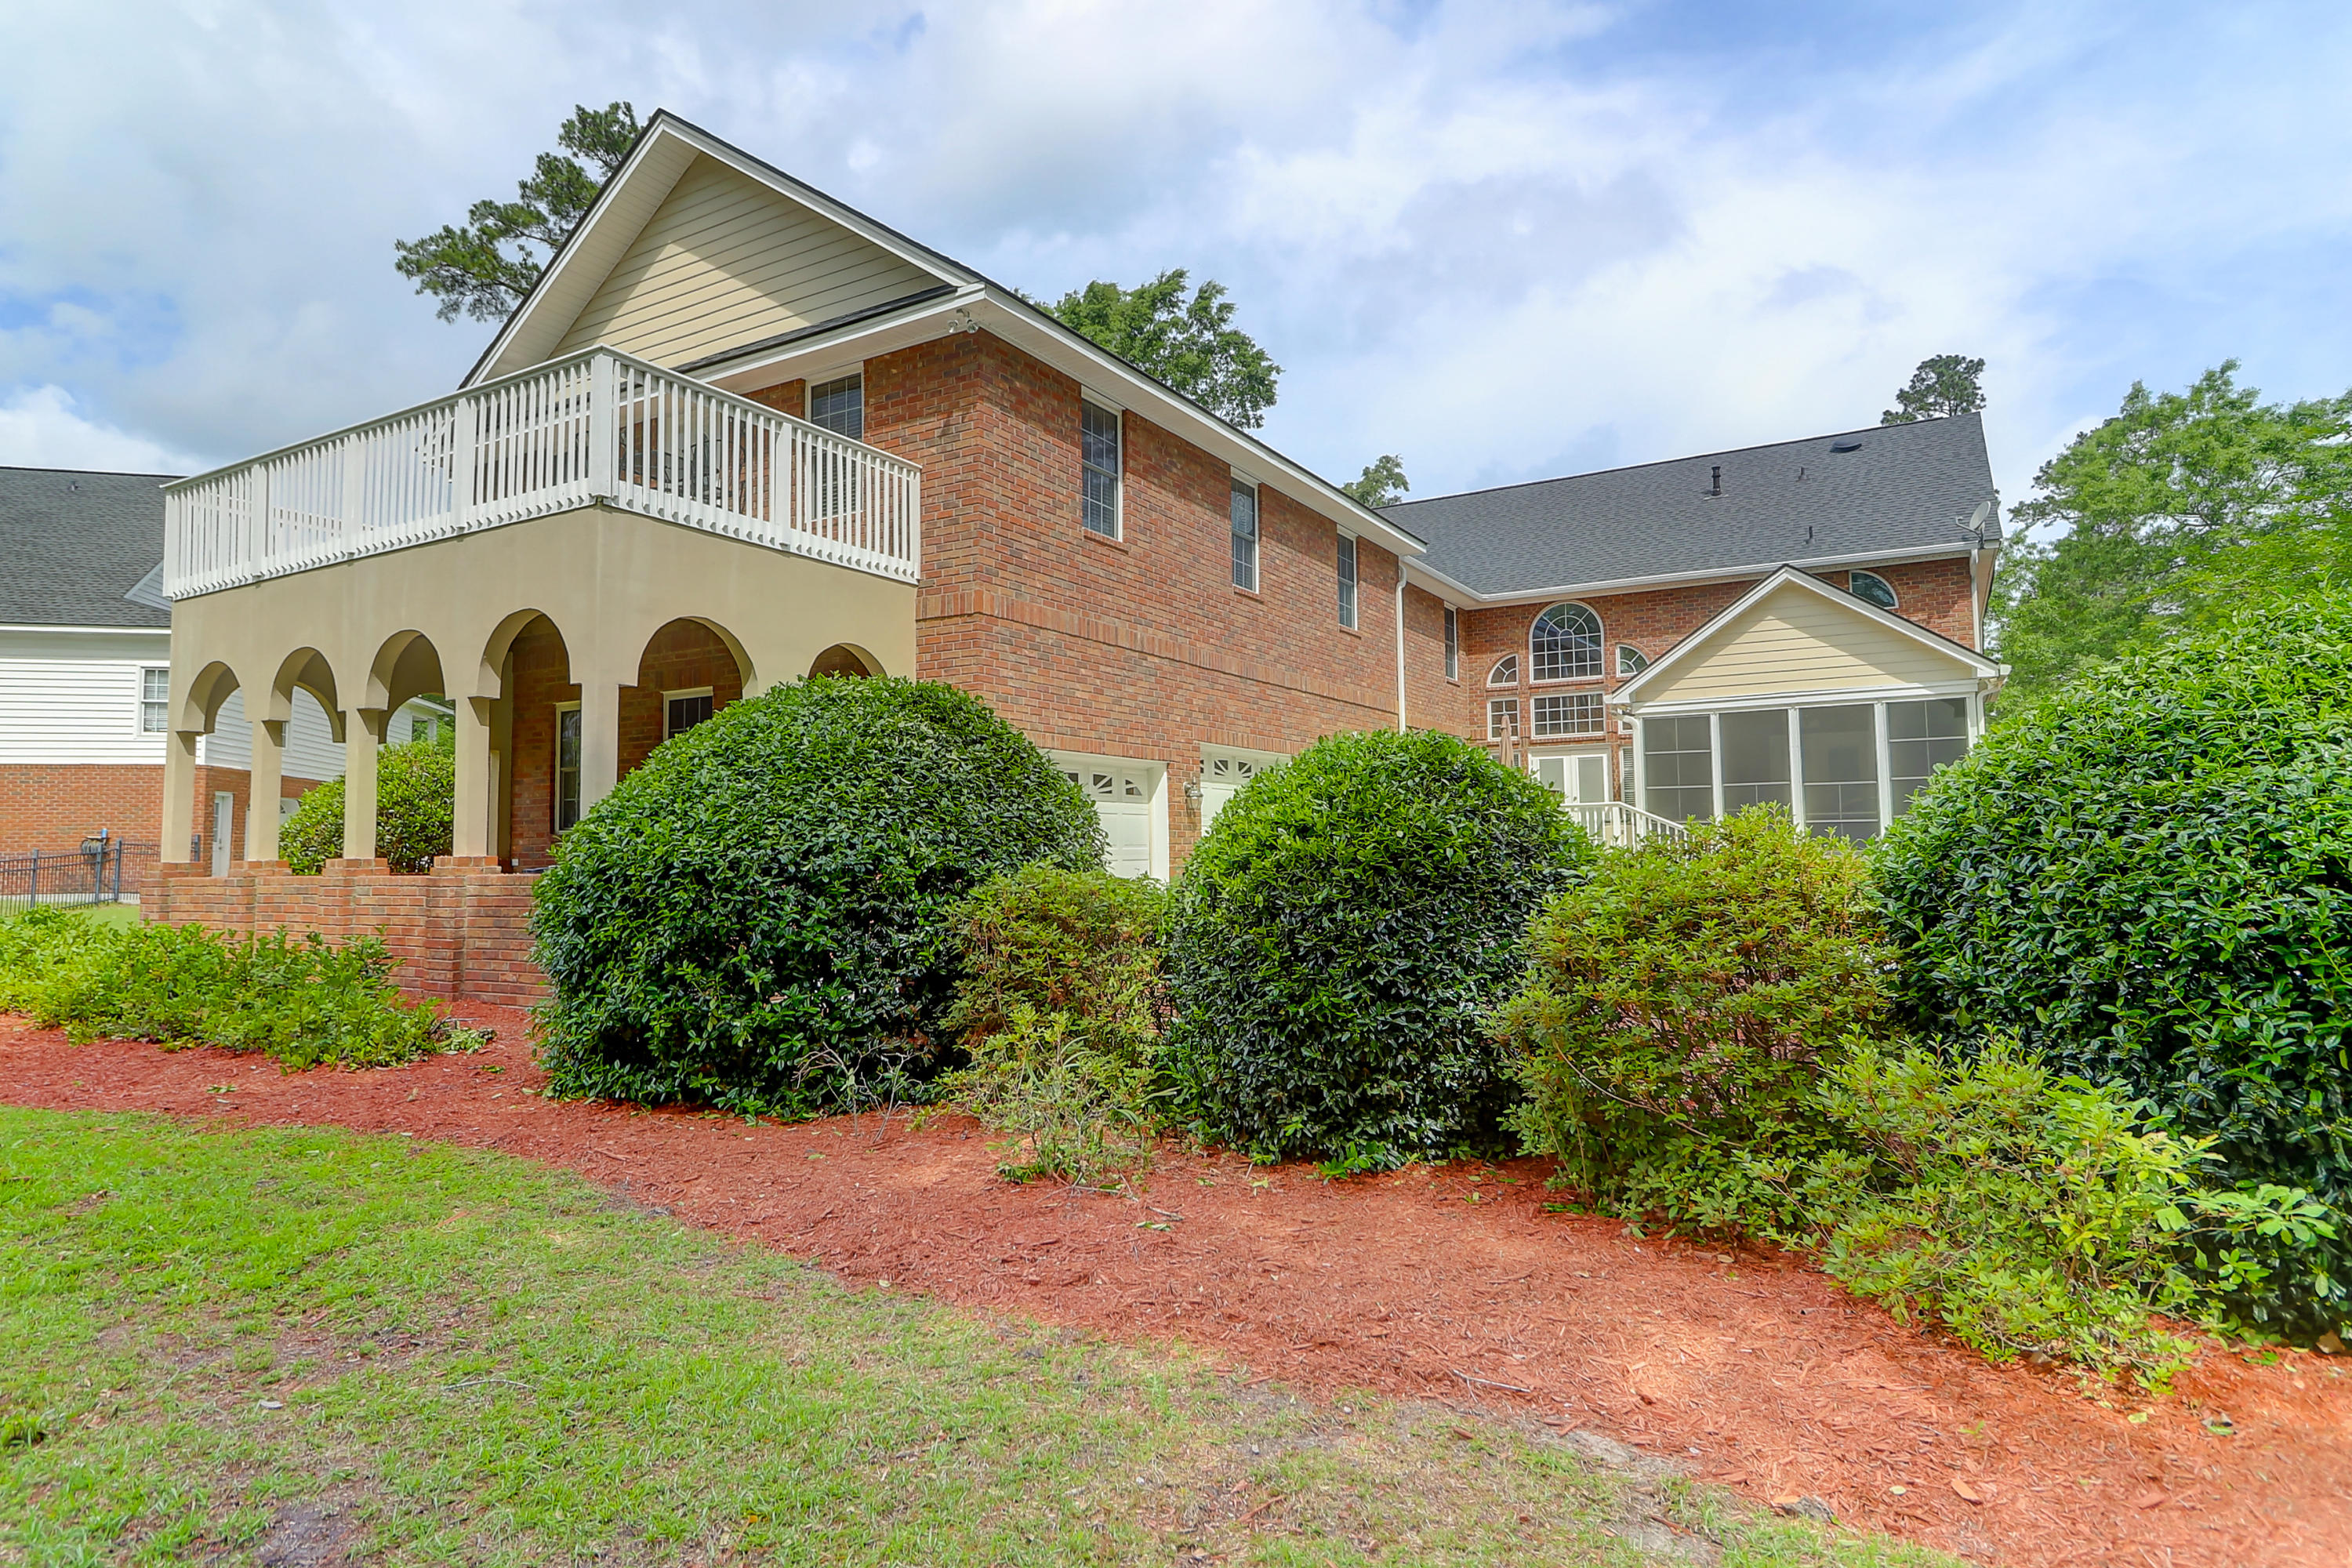 Coosaw Creek Country Club Homes For Sale - 8700 Fairway Woods, North Charleston, SC - 55